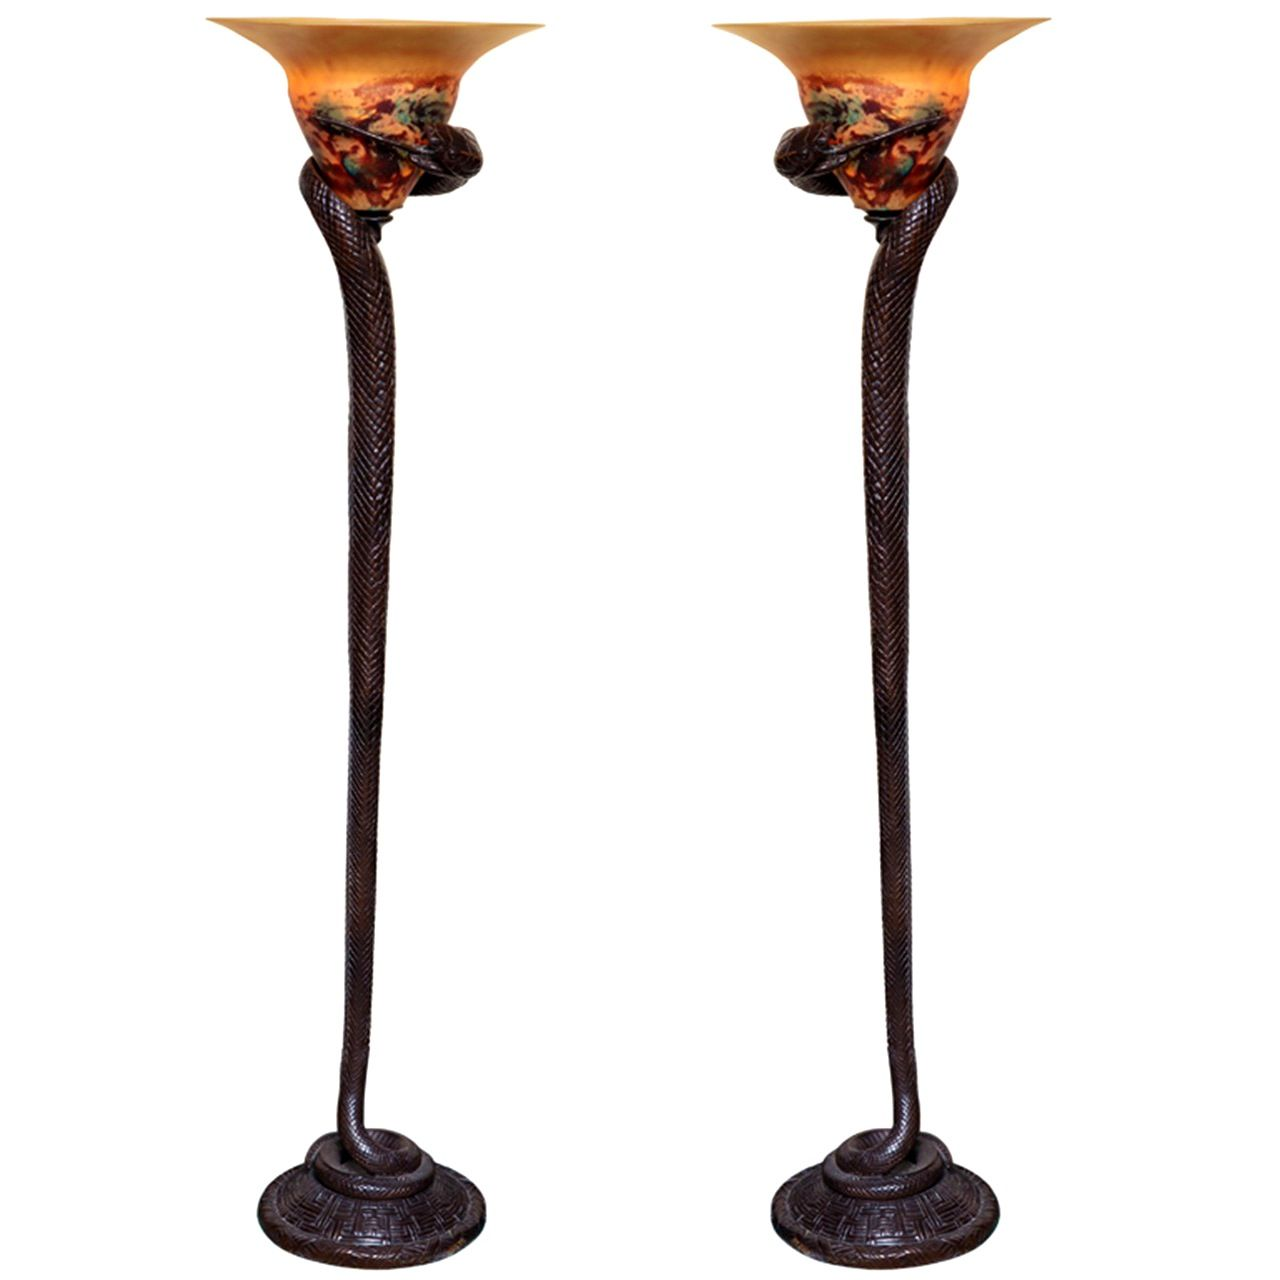 Art Deco Floor Lamp Furnitureattractive Images About Art Deco Lighting Floor Lamps